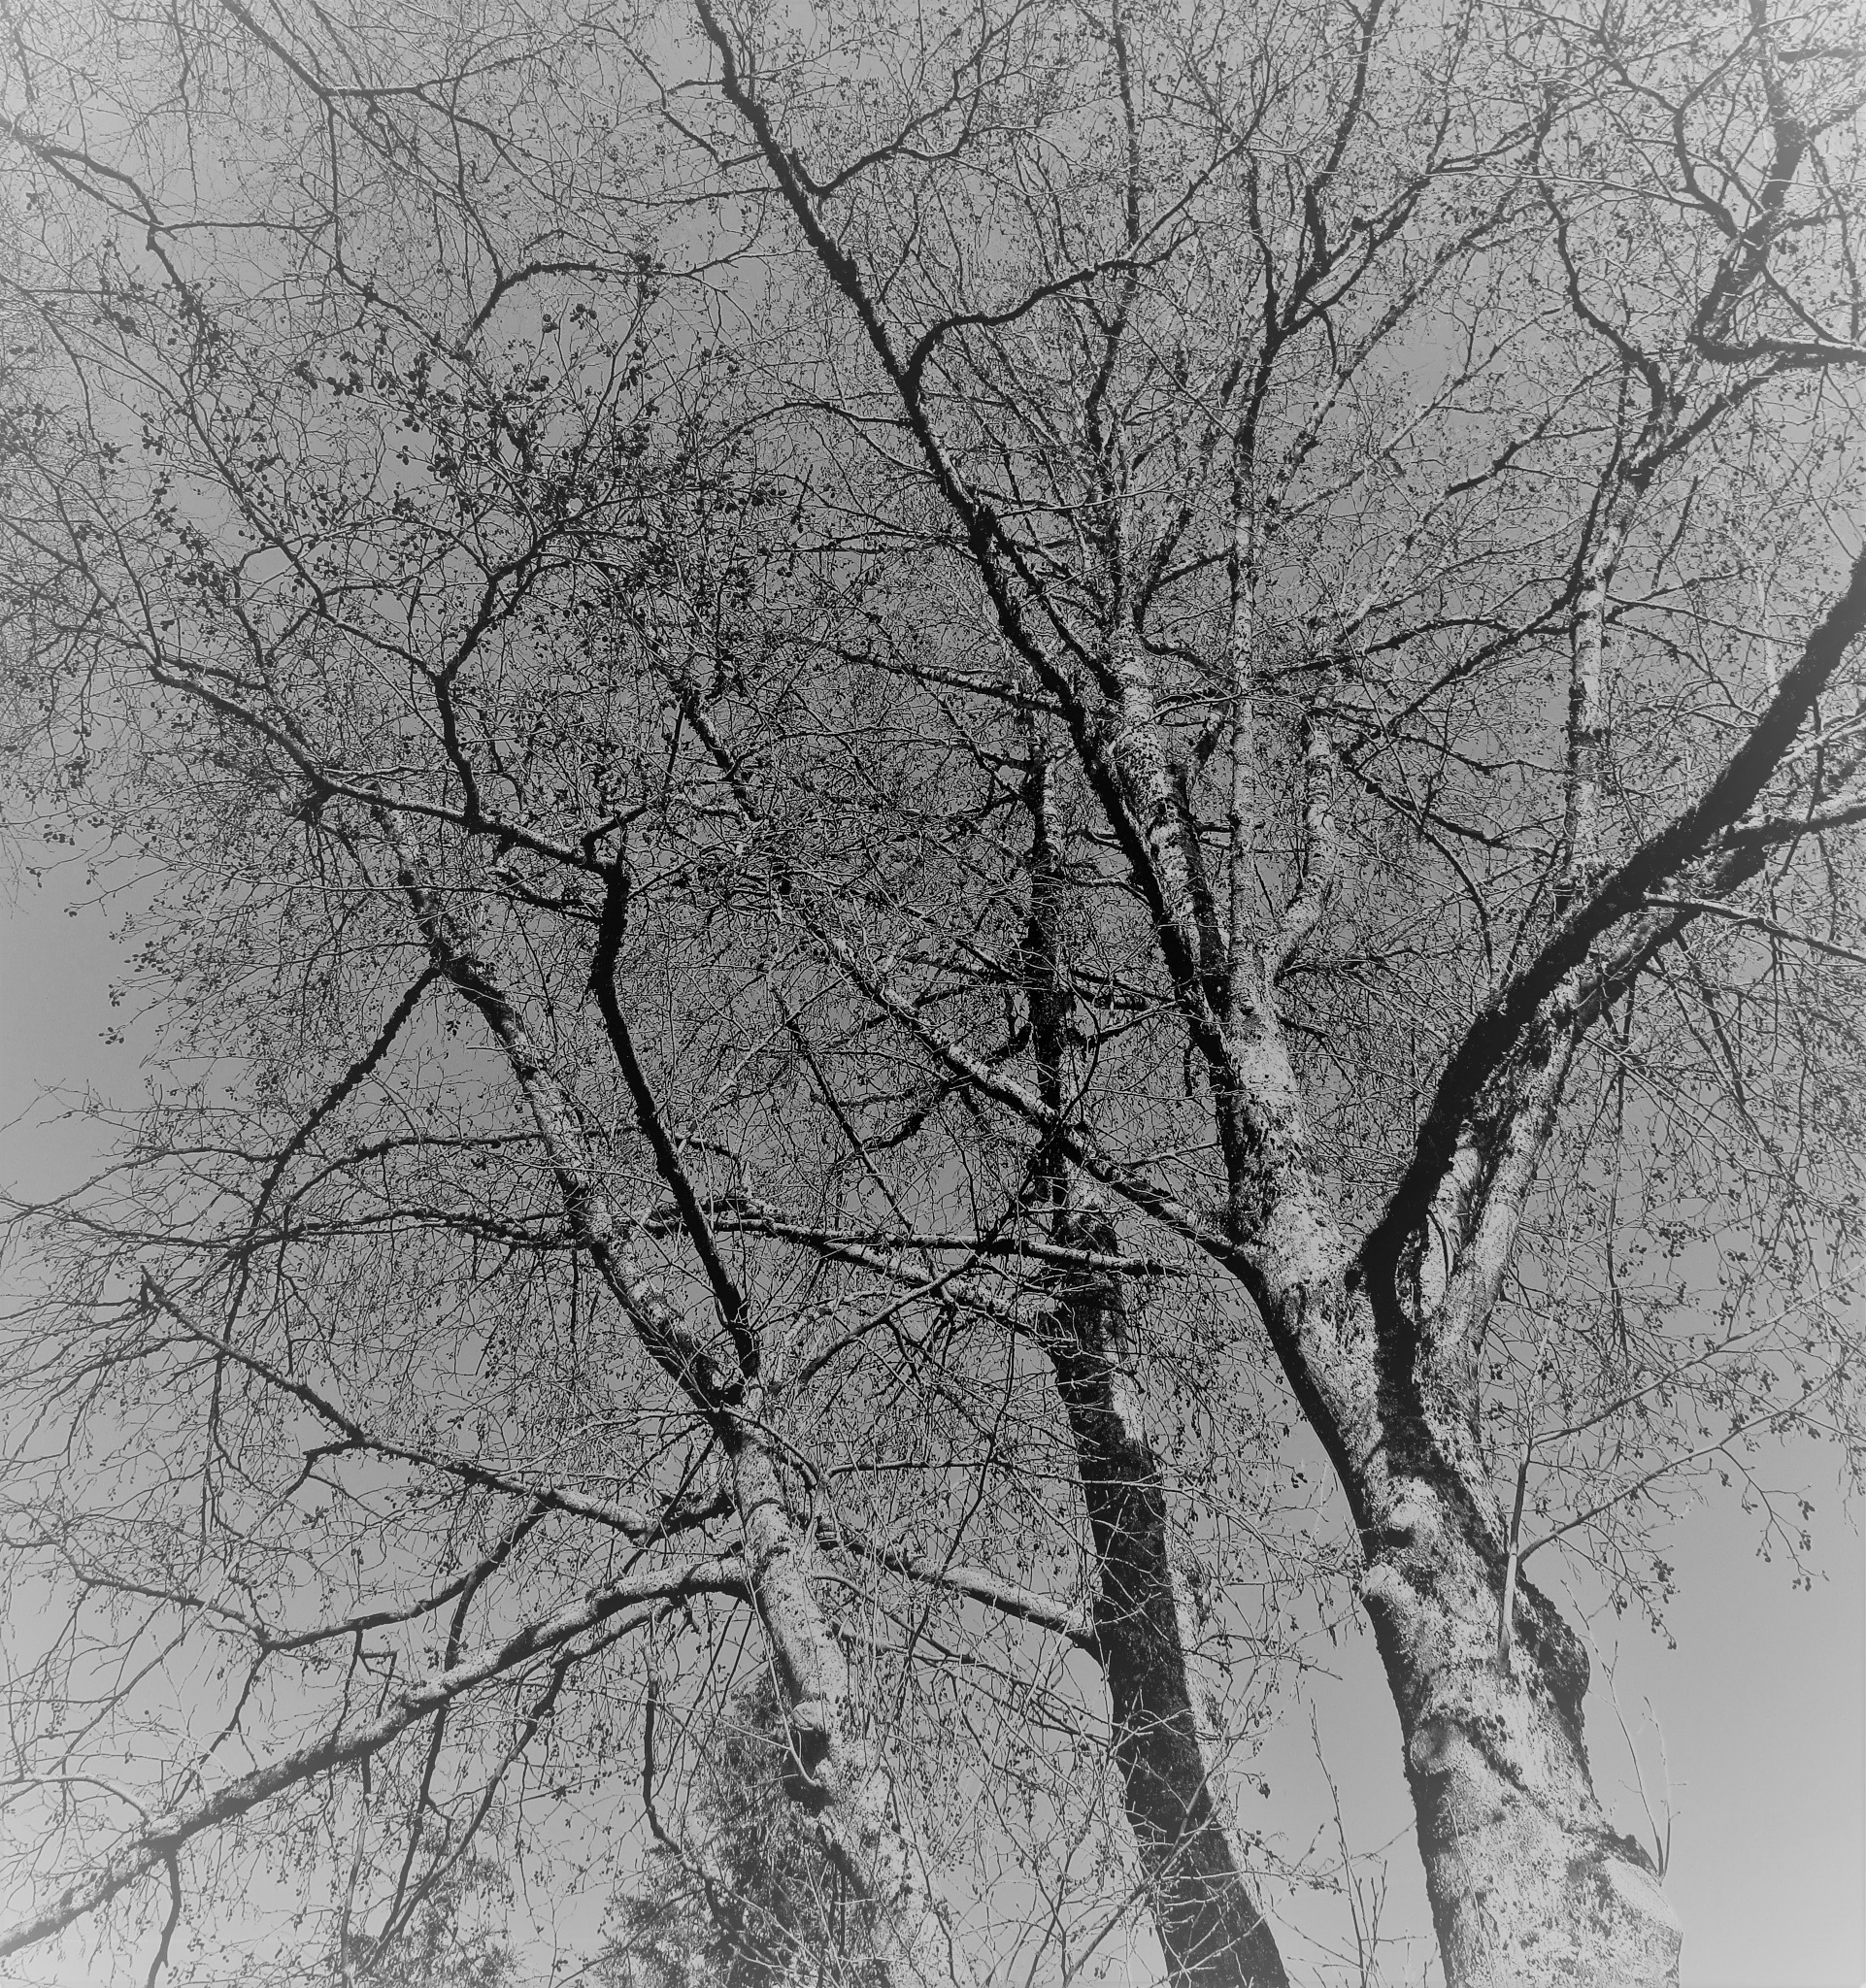 Branches by vigilicatherine